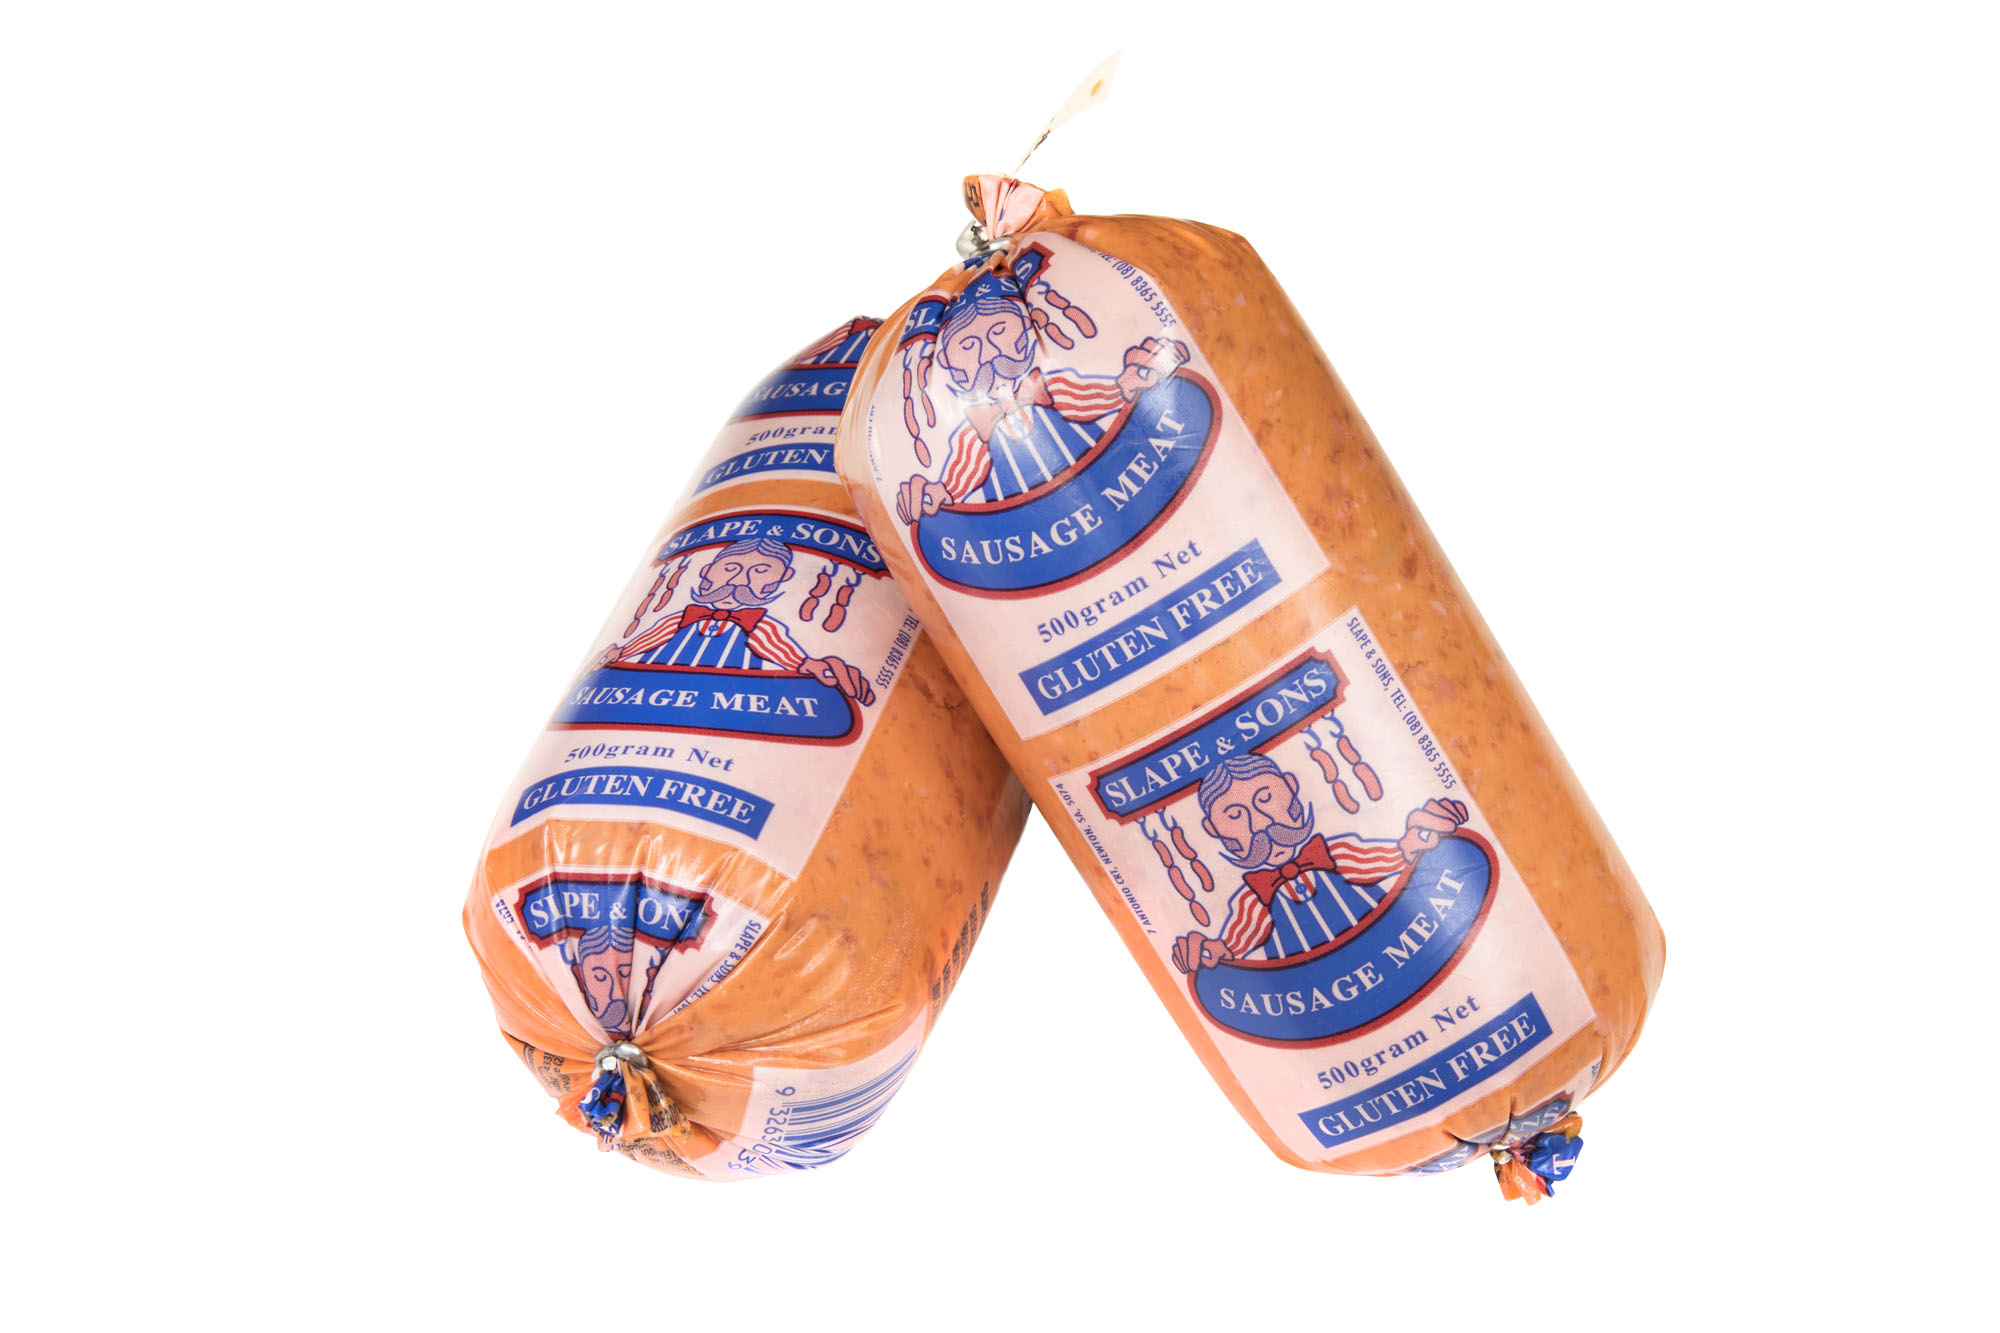 Slape and Sons - Sausage Meat – 500gm